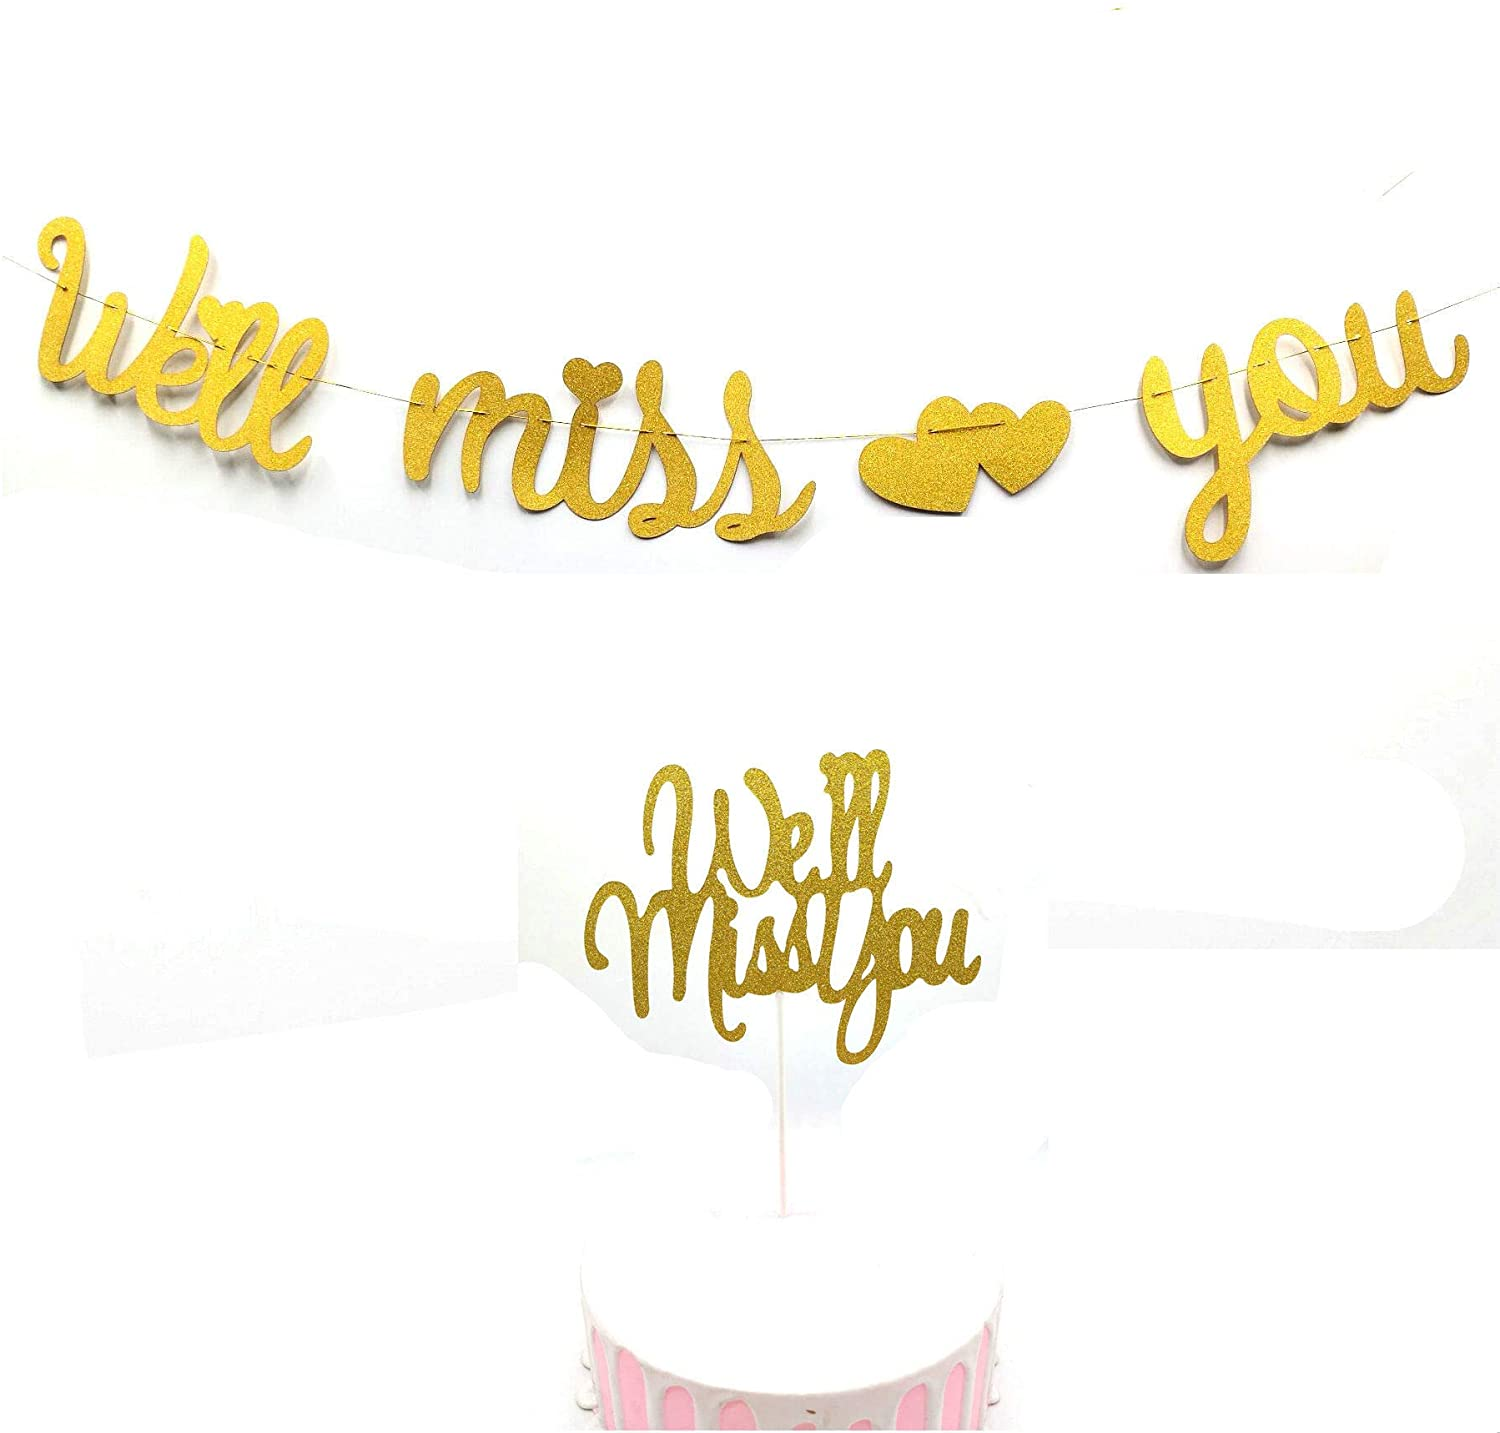 Gold Glitter We Will Miss You Banner Cake Topper Retirement Party Decorations Retirement Banner/Retirement Sign/Going Away Party Decor Farewell Party Decorations Office Work Party Decorations